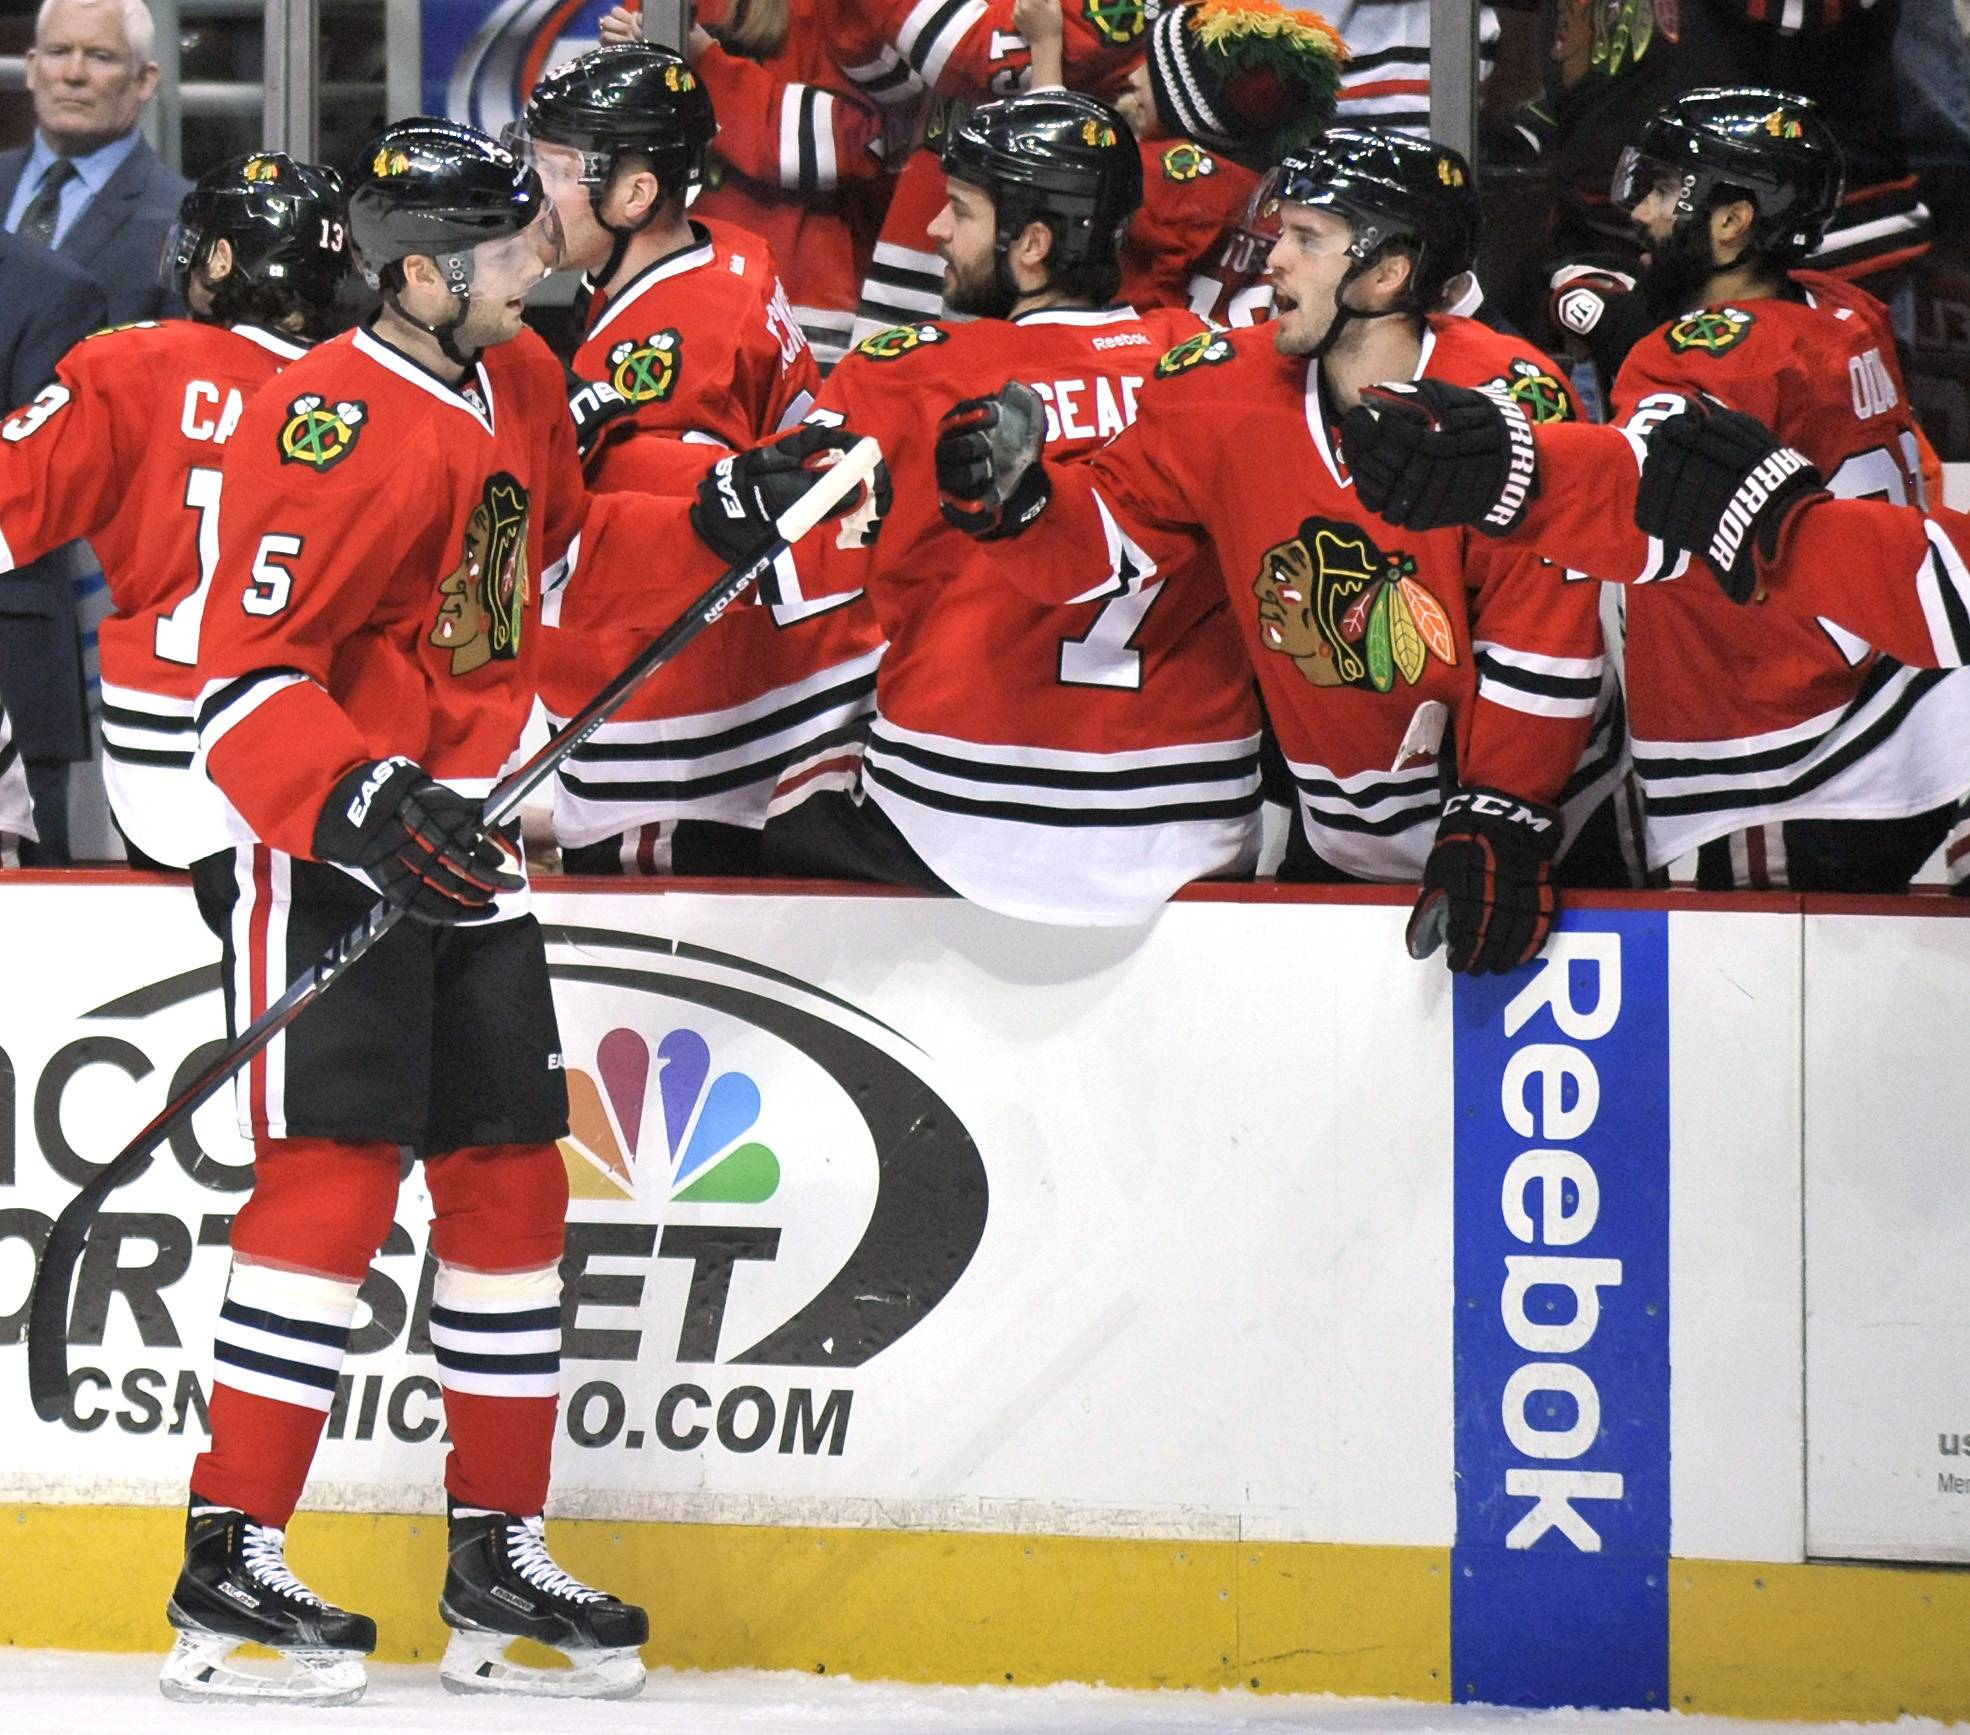 The Blackhawks' David Rundblad celebrates with teammates Sunday on the bench during the first period of an NHL hockey game against the Toronto Maple Leafs in Chicago.